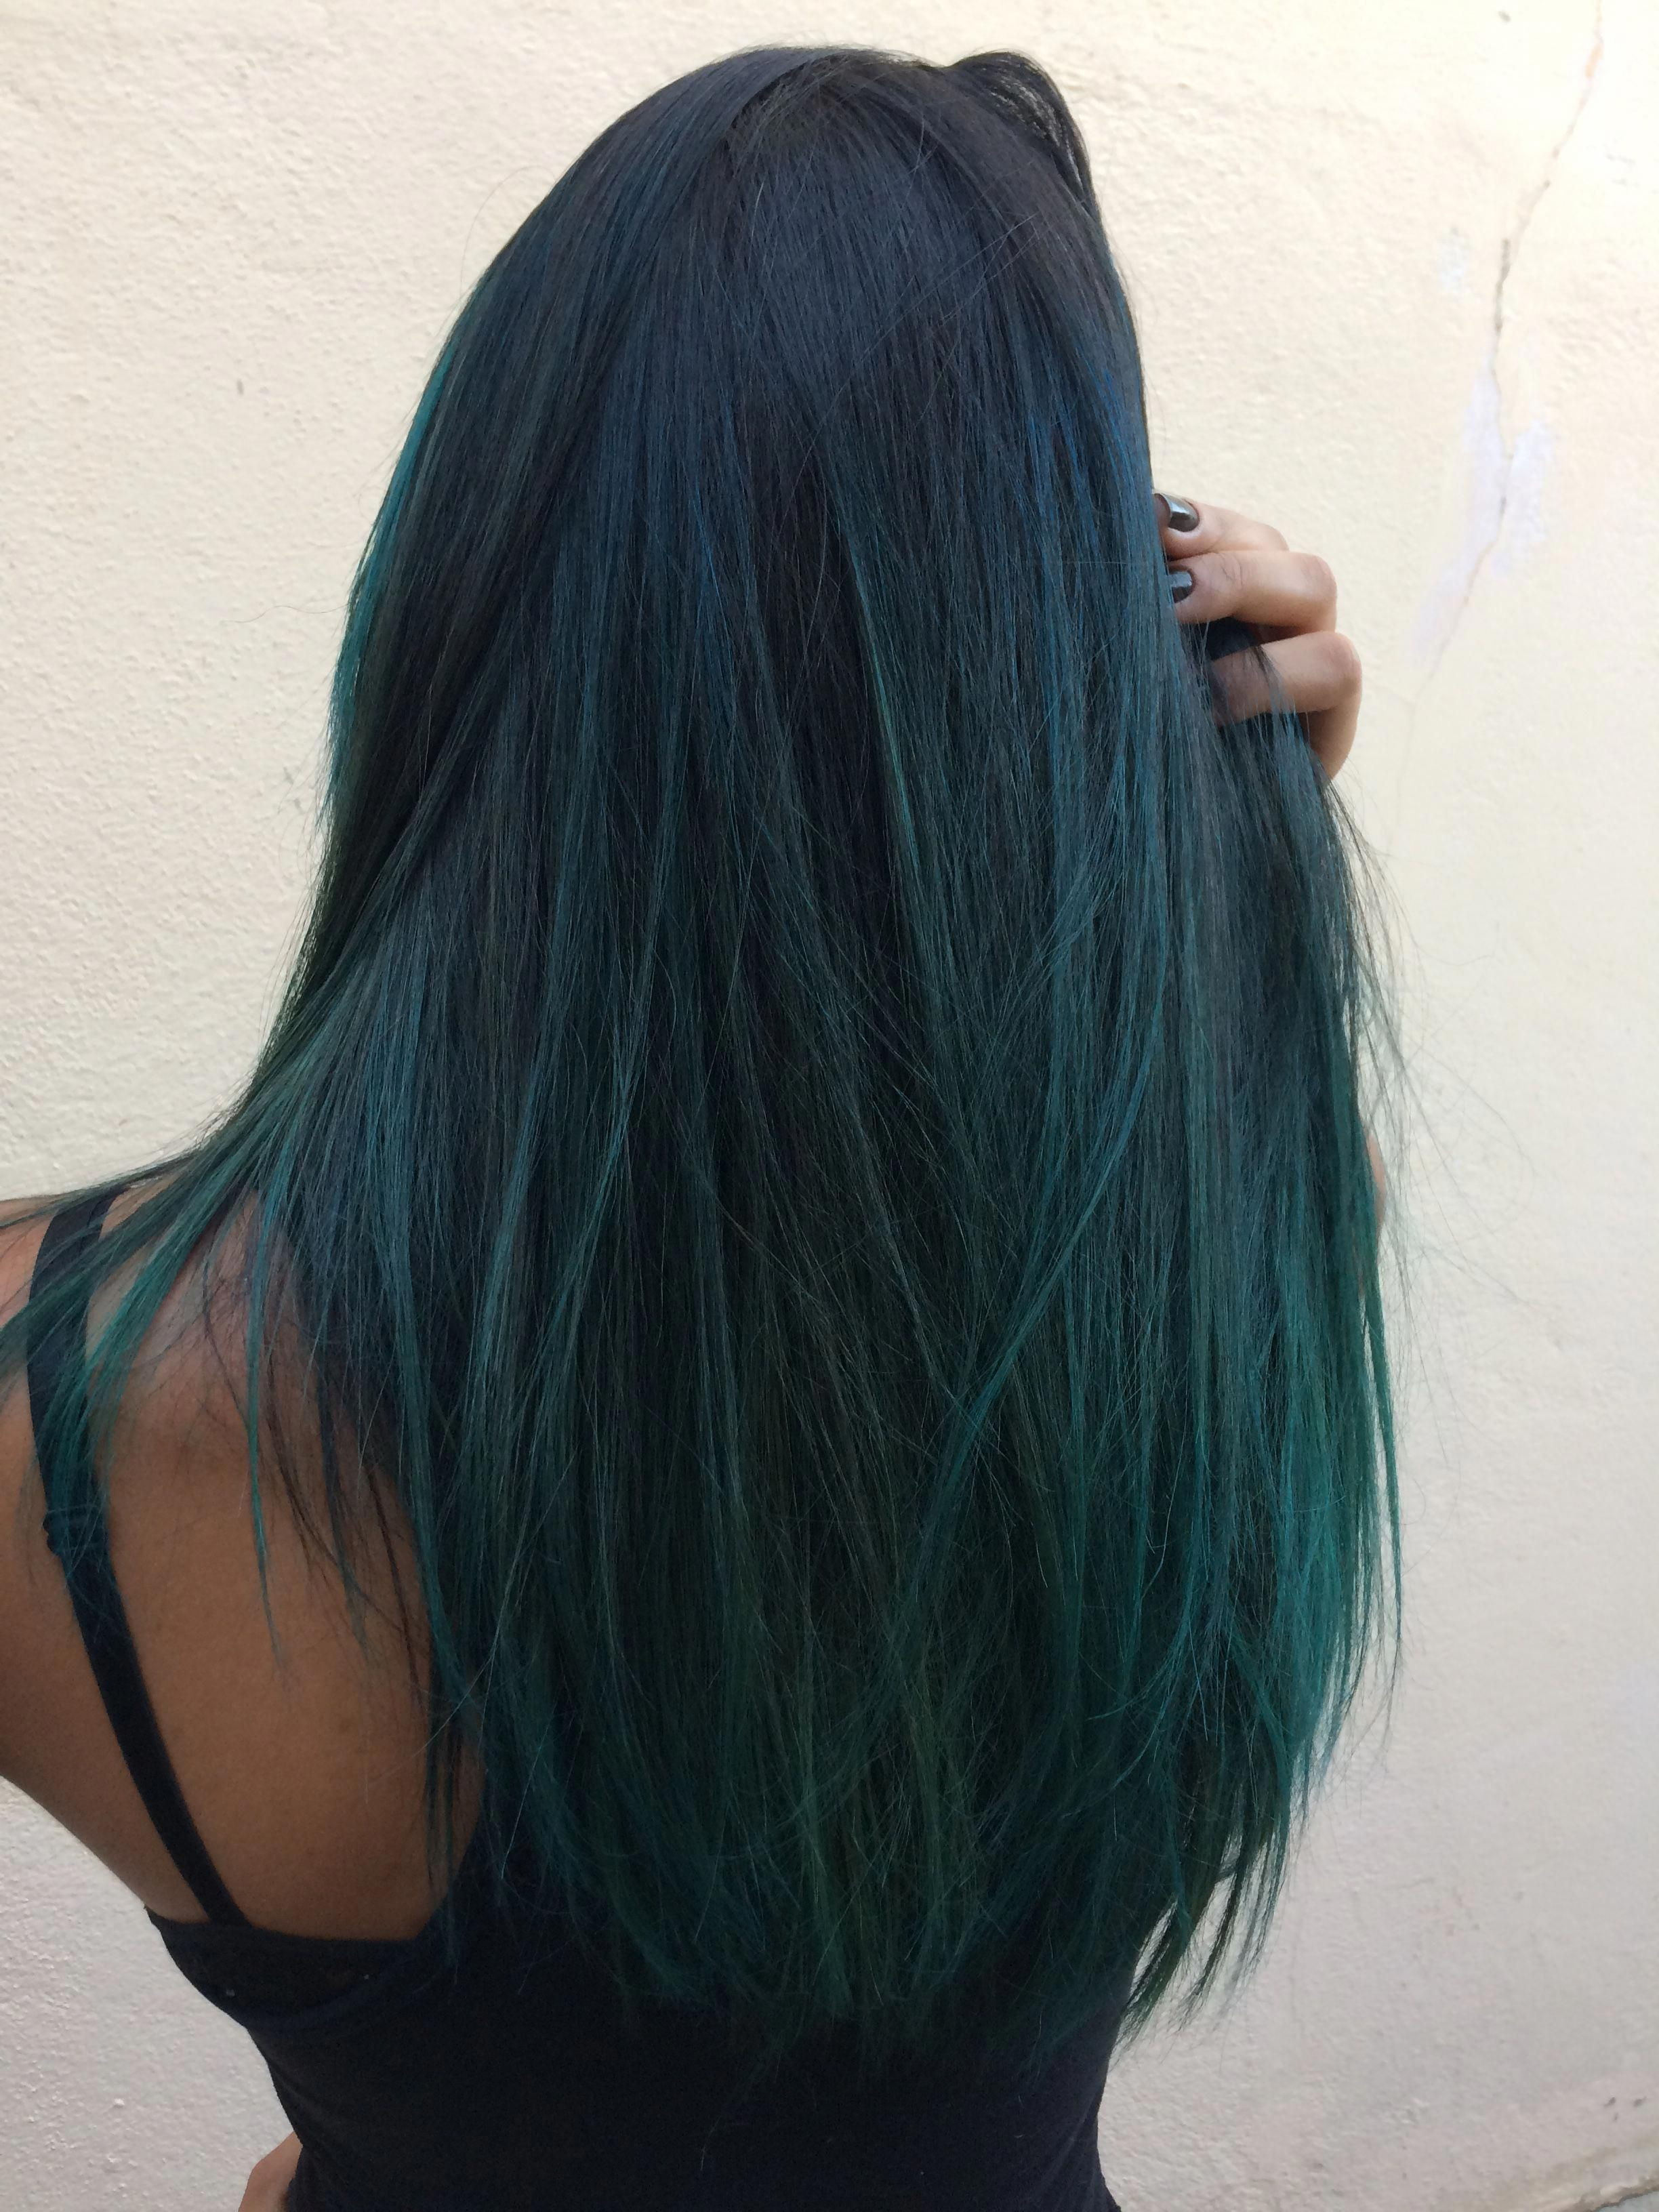 Hair Newhair Ombrehair Ombre Green Blue Color Cabelocolorido Hairstylecolorblueteal Hair Color For Black Hair Brunette Hair Color Brown Ombre Hair